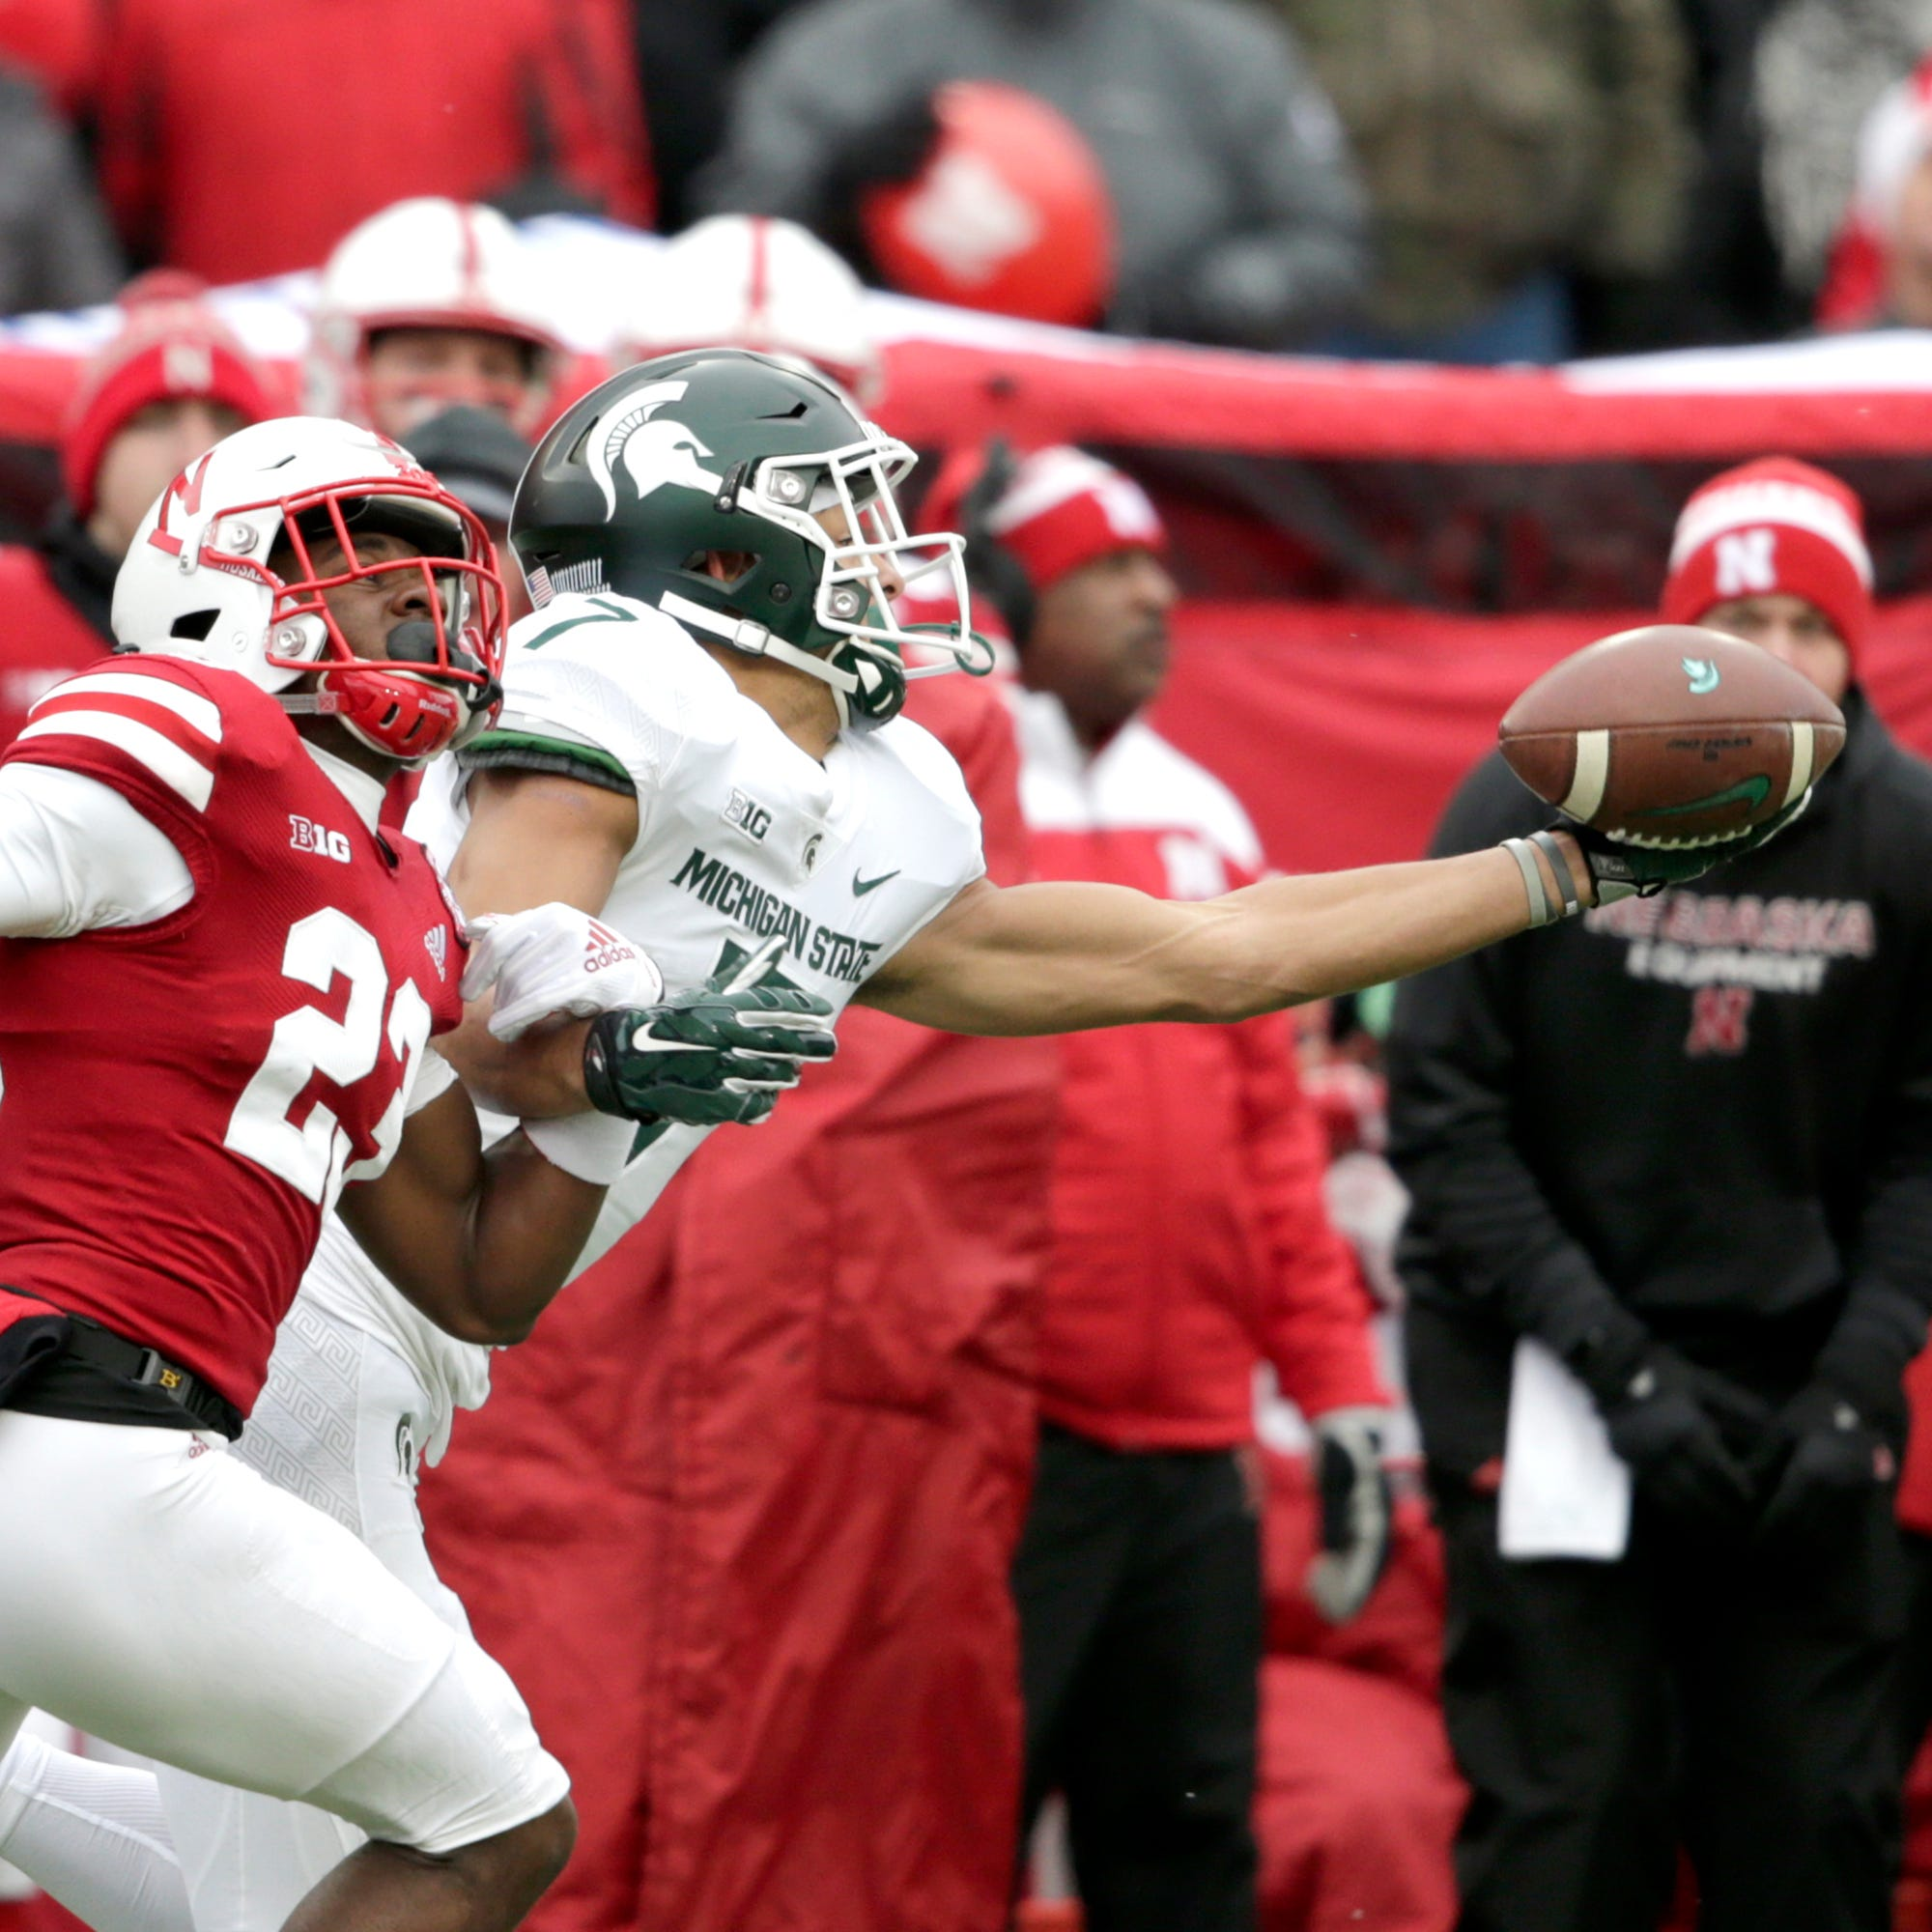 MSU's offense stalls in loss to Nebraska